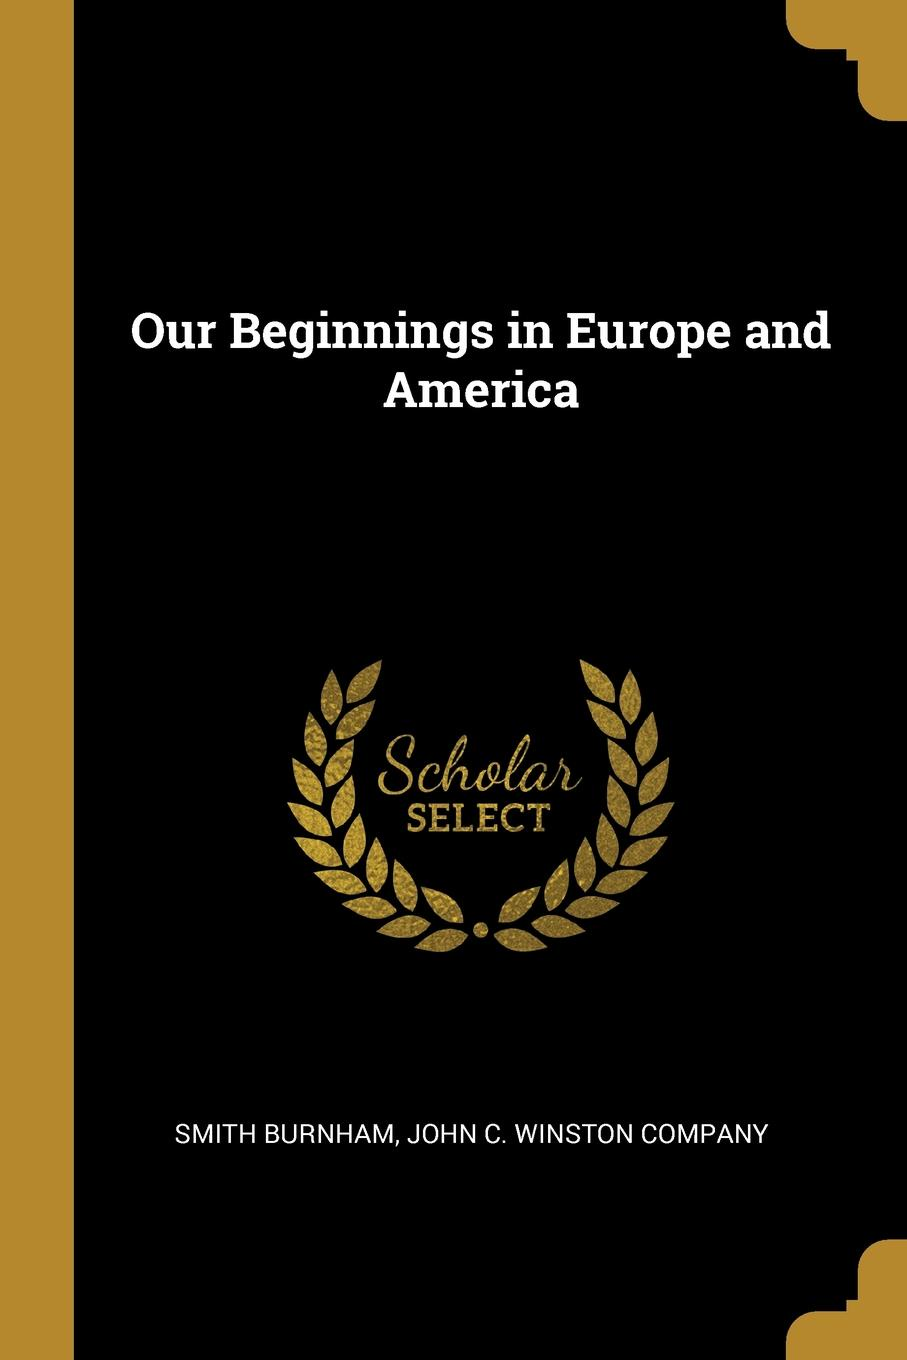 Our Beginnings in Europe and America